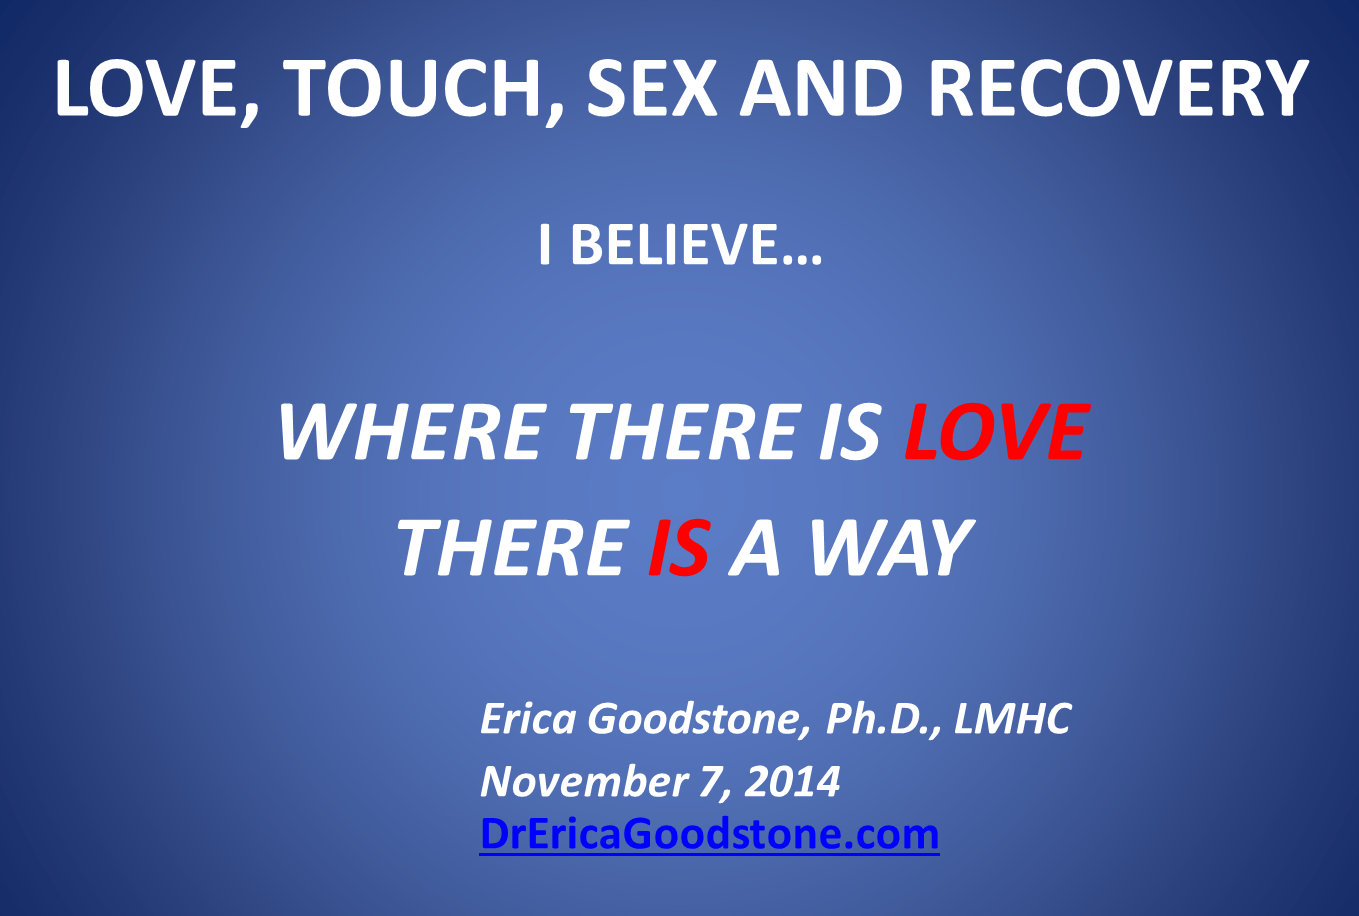 Love, Touch, Sex and Recovery